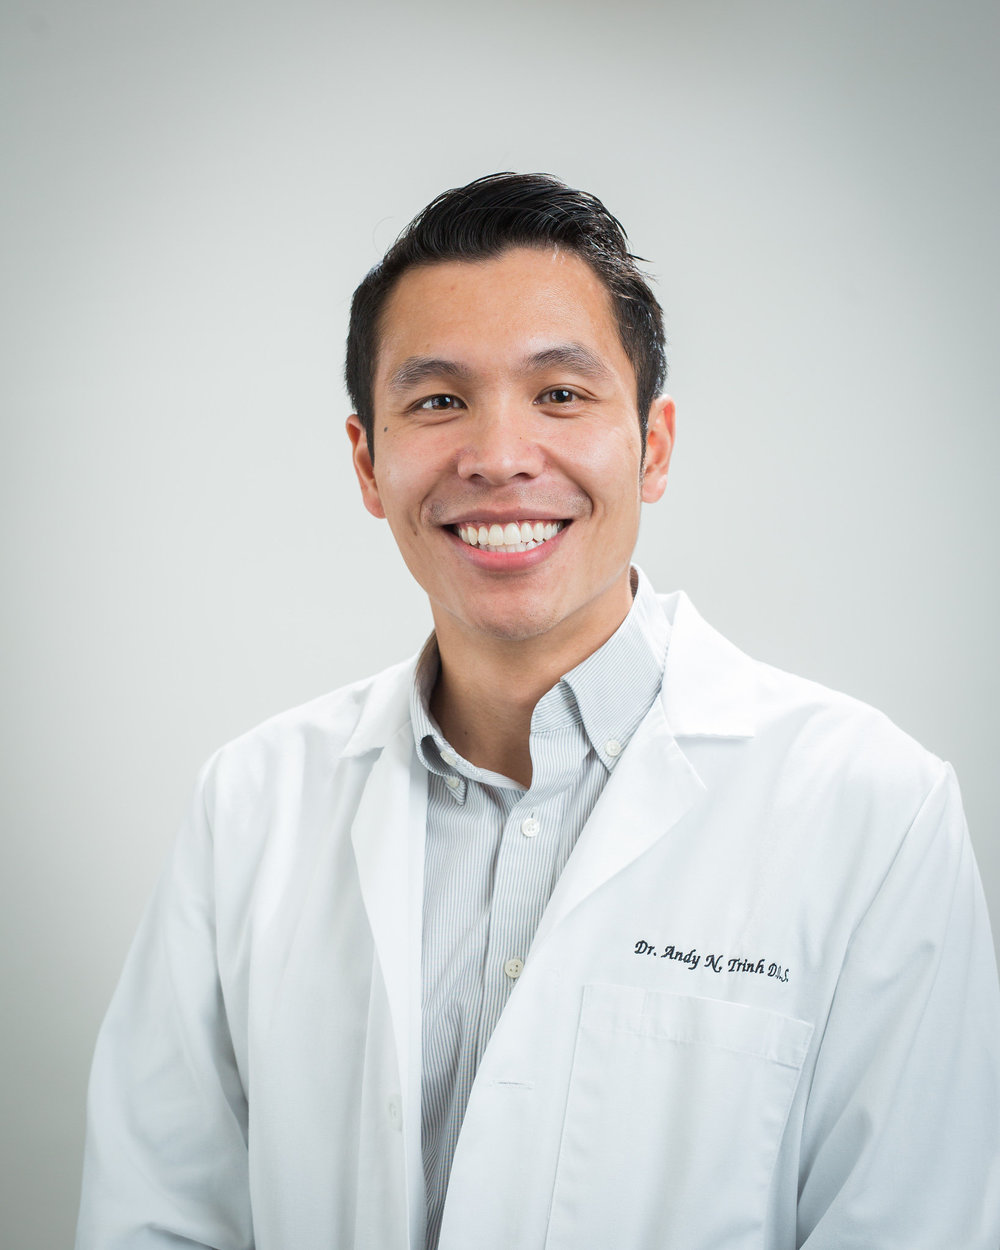 Meet Dr. Andy Trinh at Totem Lake Dental in Kirkland, WA.